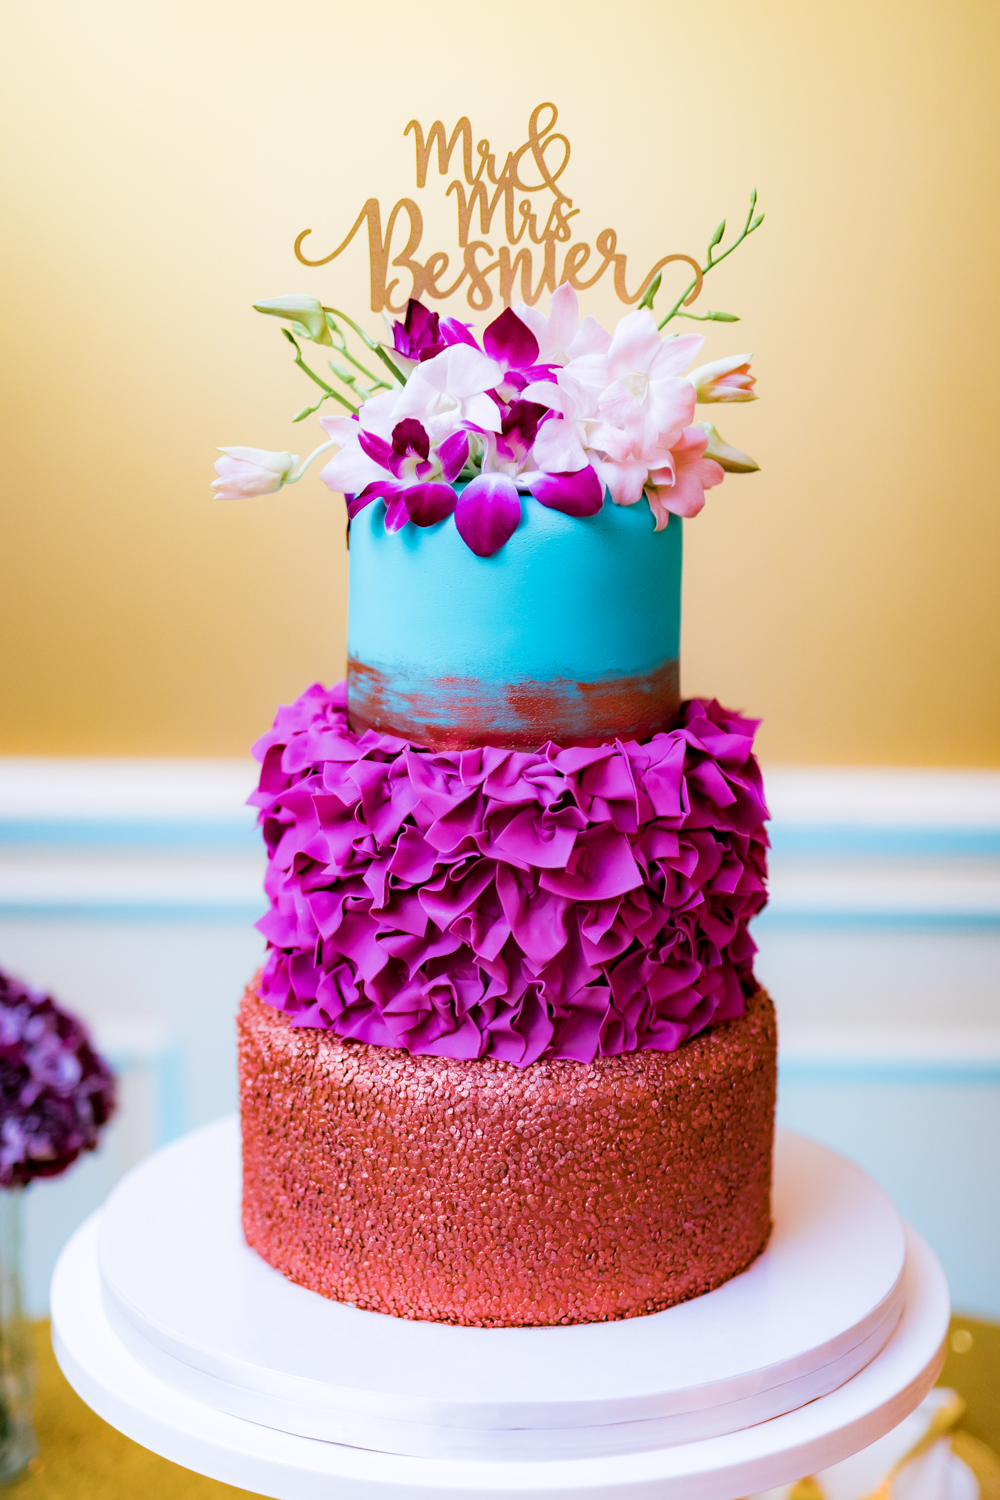 Colorful 3 tiered wedding cake with red, purple, and blue, topped with fresh flowers.